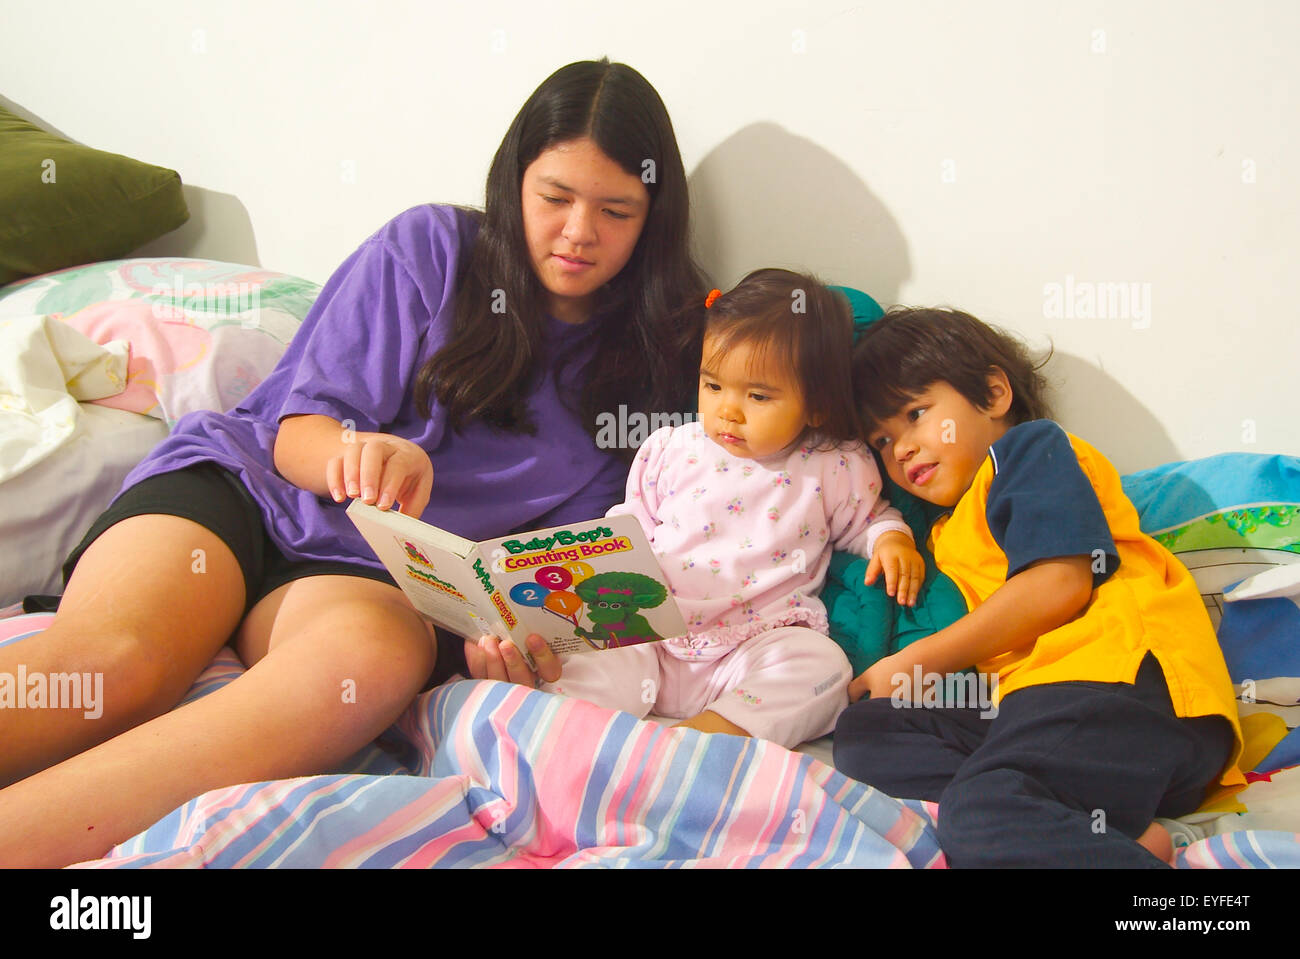 Baby Sitter And Sister Stock Photos & Baby Sitter And Sister Stock ...